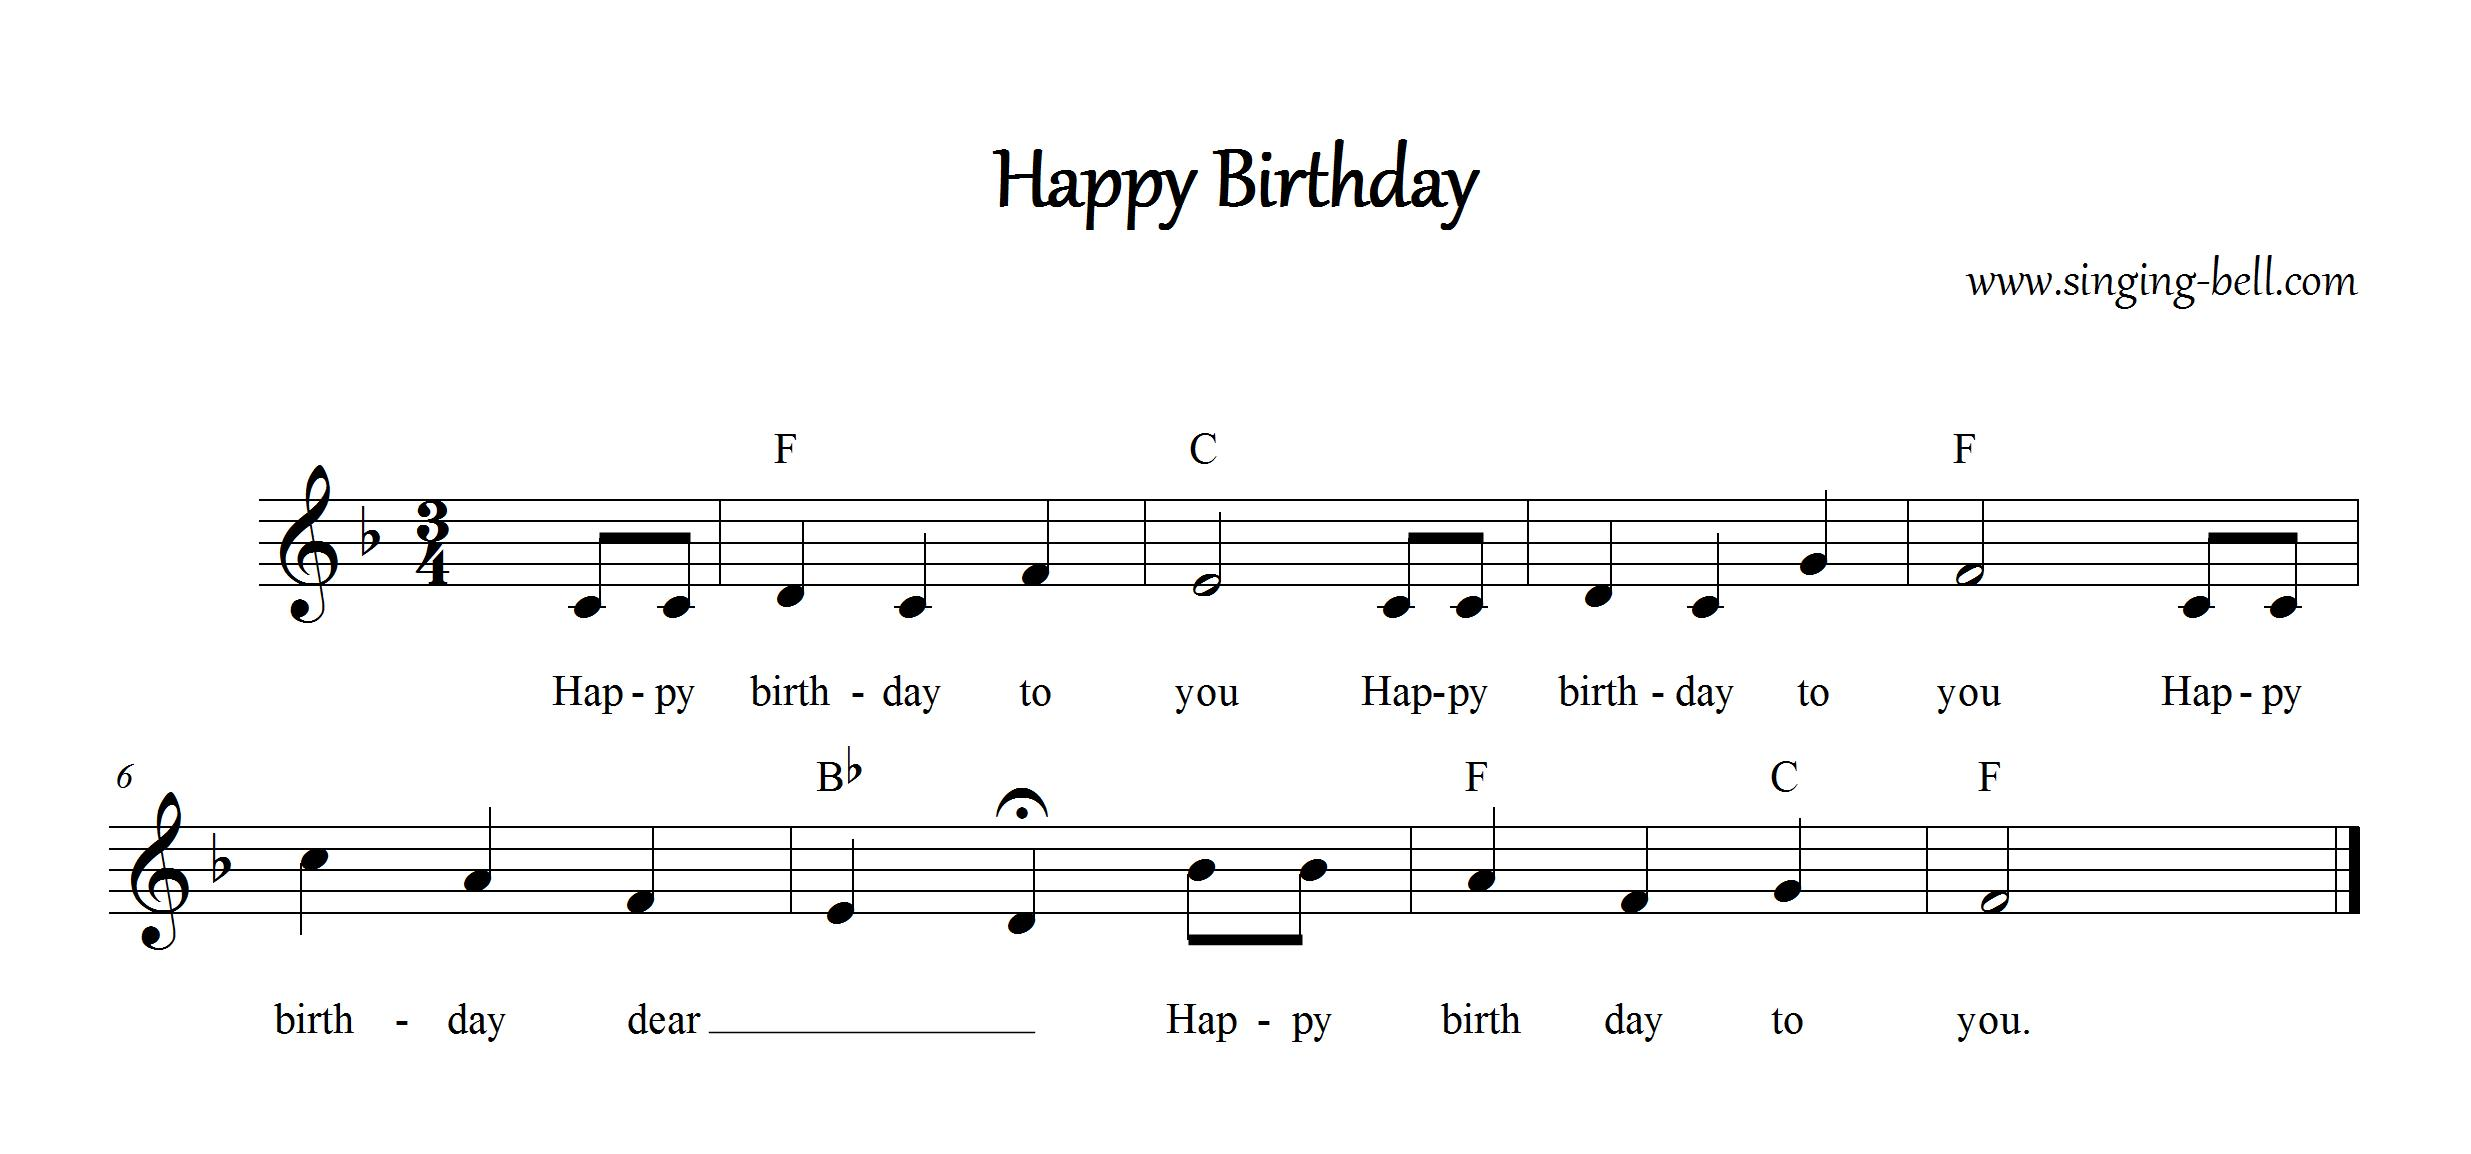 Free karaoke mp3 | Happy Birthday to You - Free Download